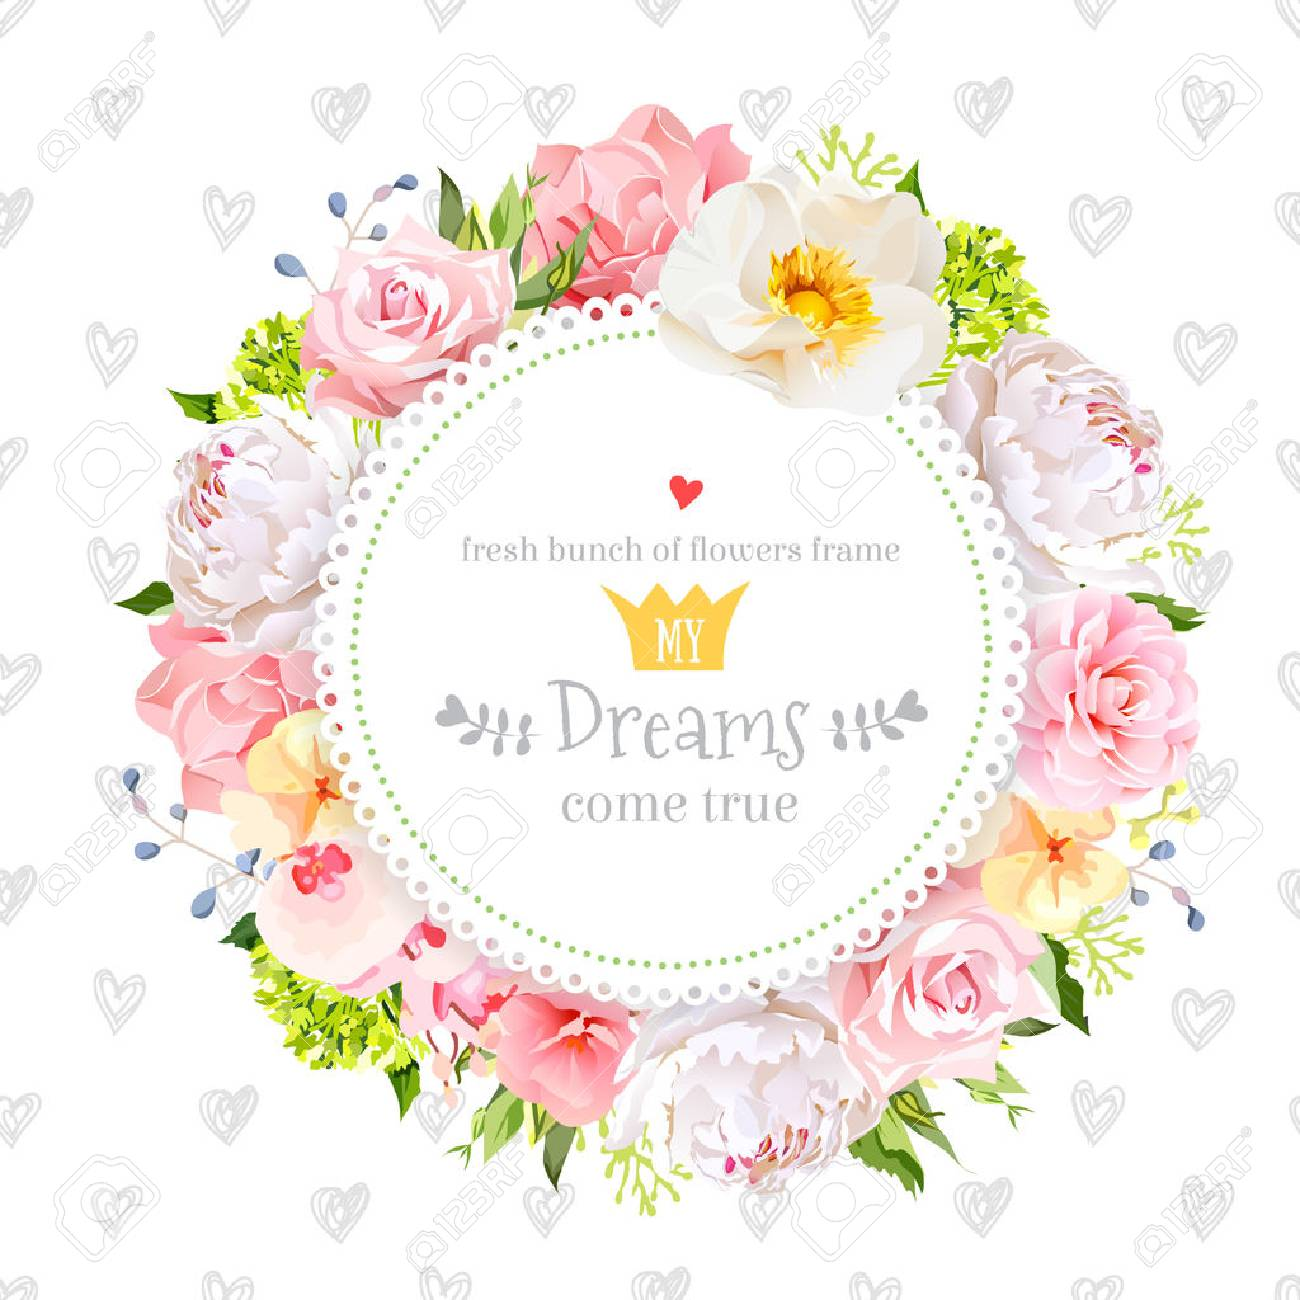 Peony, wild rose, orchid, carnation, camellia, hydrangea, blue berries and green leaves vector design round card. Simple backdrop with hand drawn hearts. All elements are isolated and editable. - 66855094